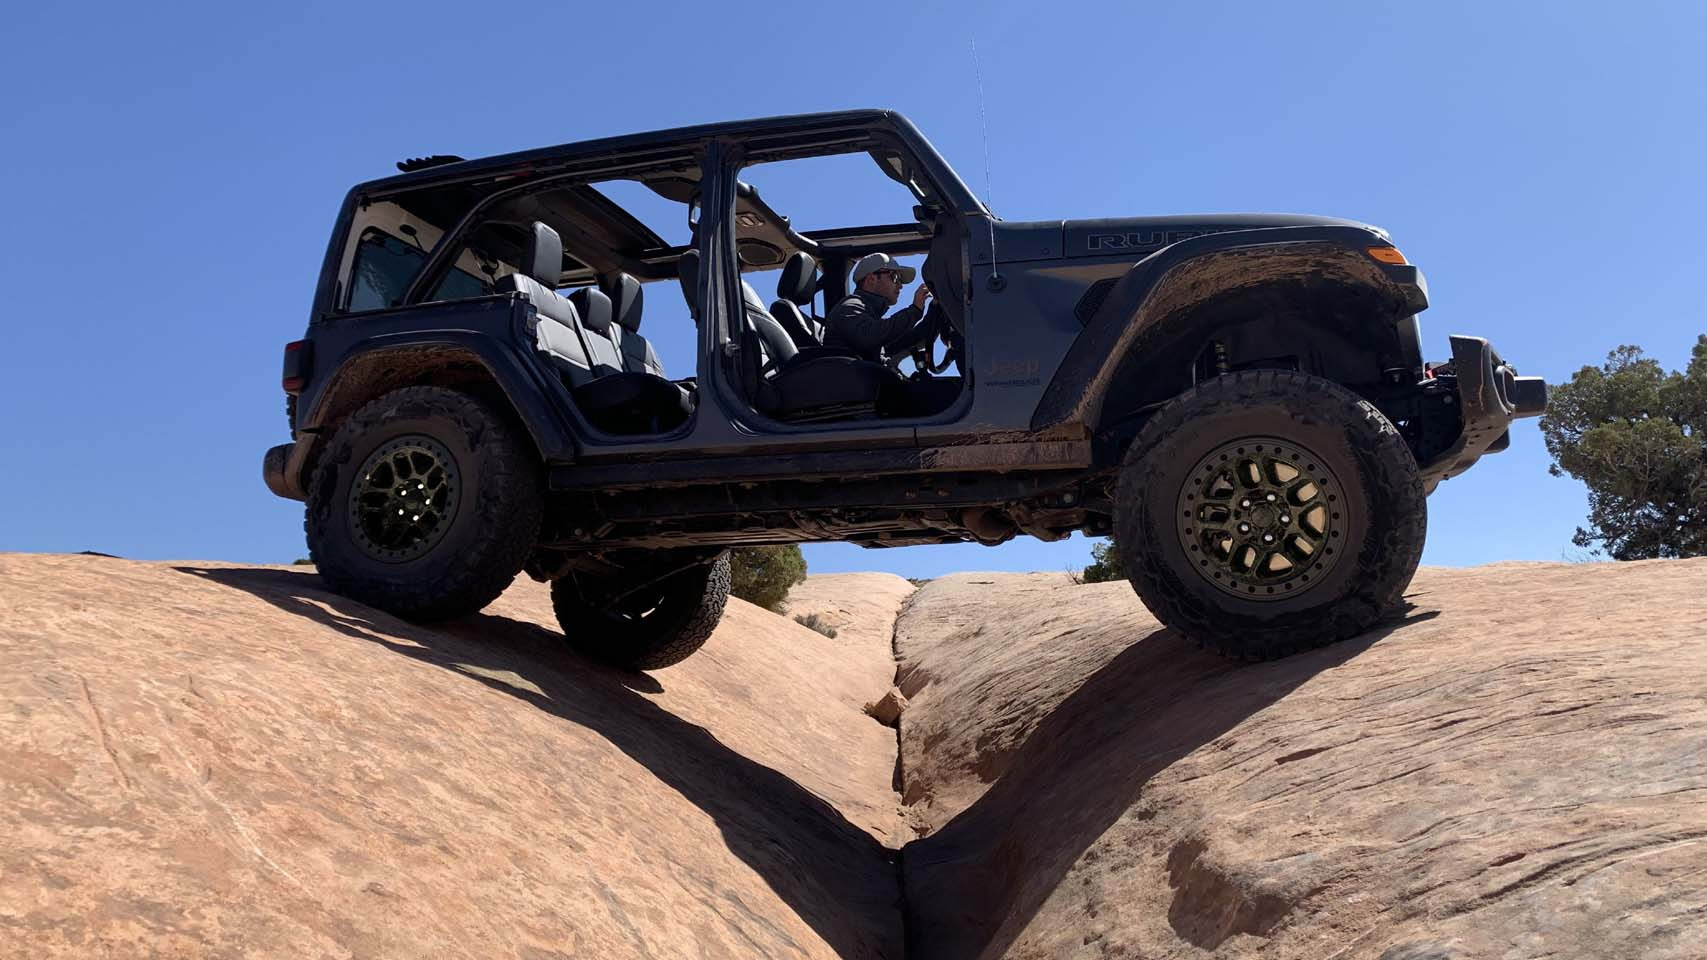 2021 Jeep Wrangler Rubicon 392 with Xtreme Recon package